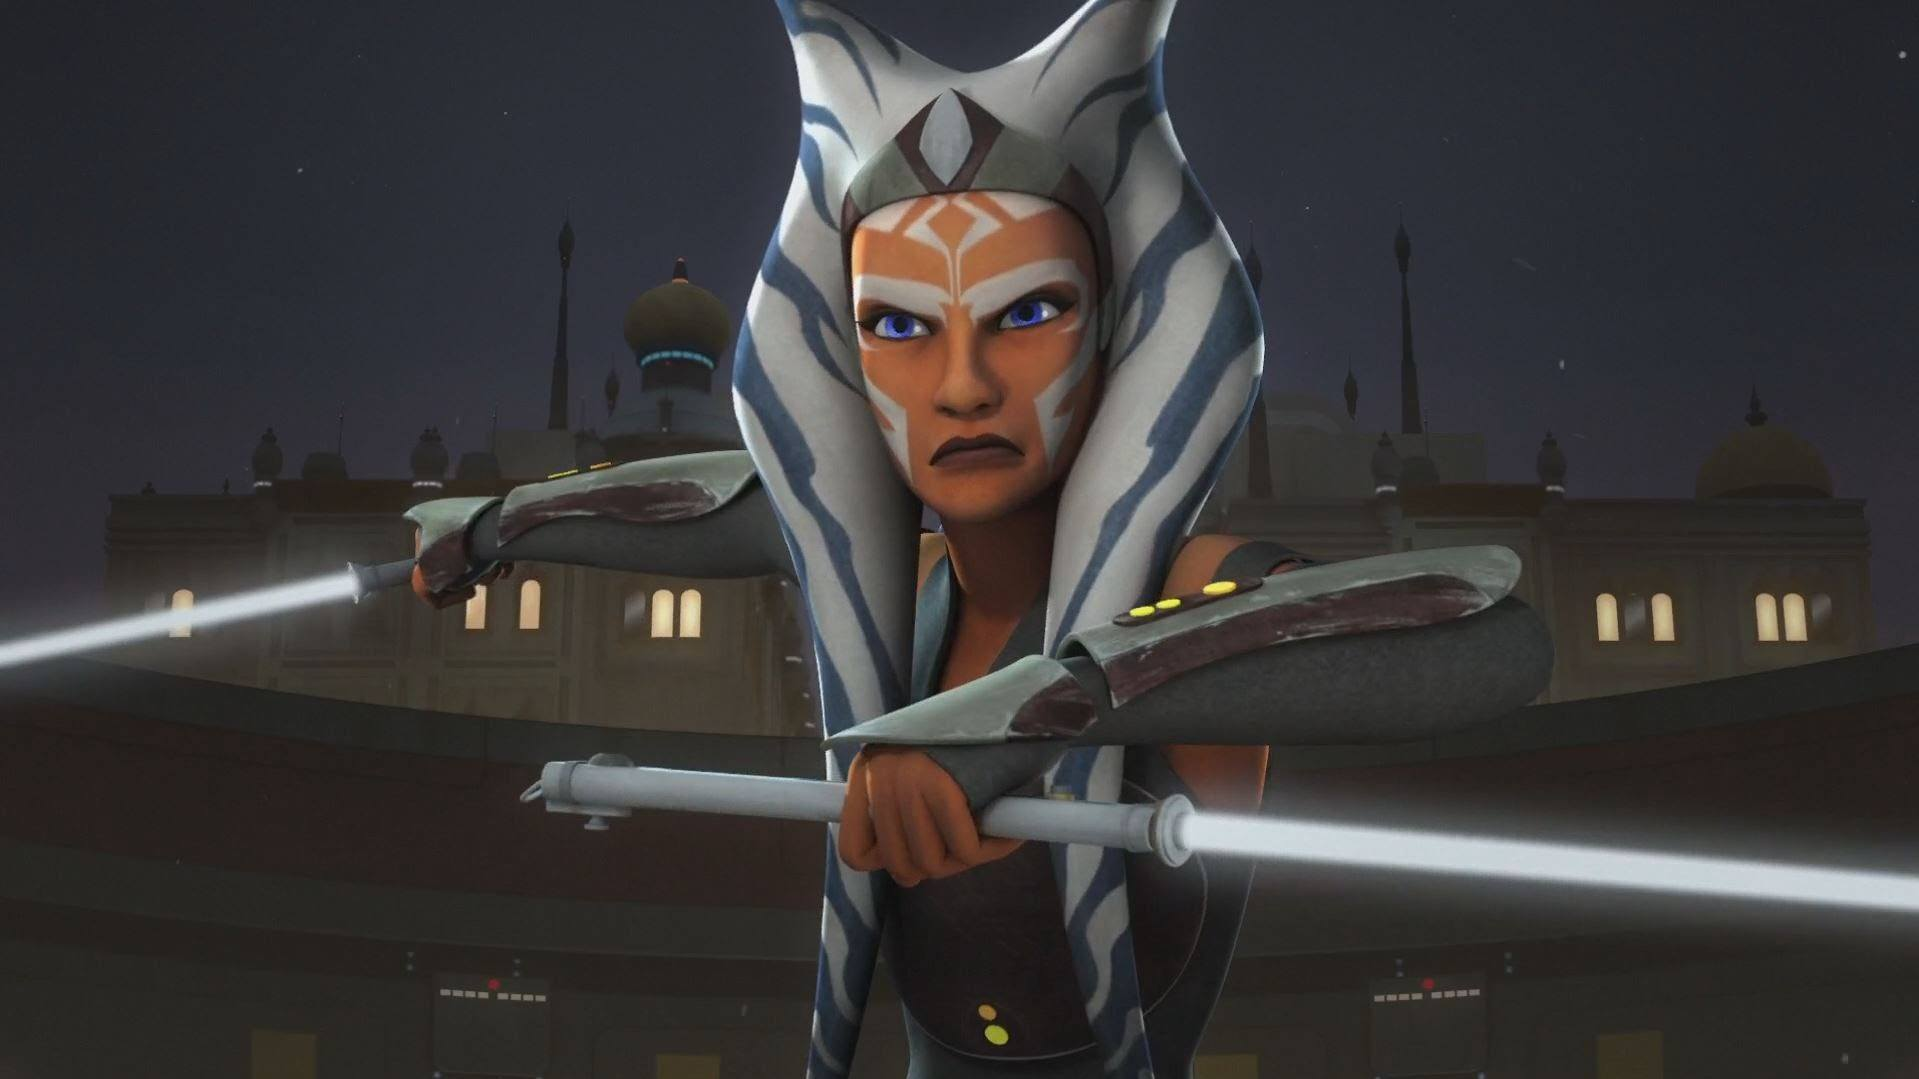 Ahsoka Tano holds up two lightsabers in Star Wars Rebels